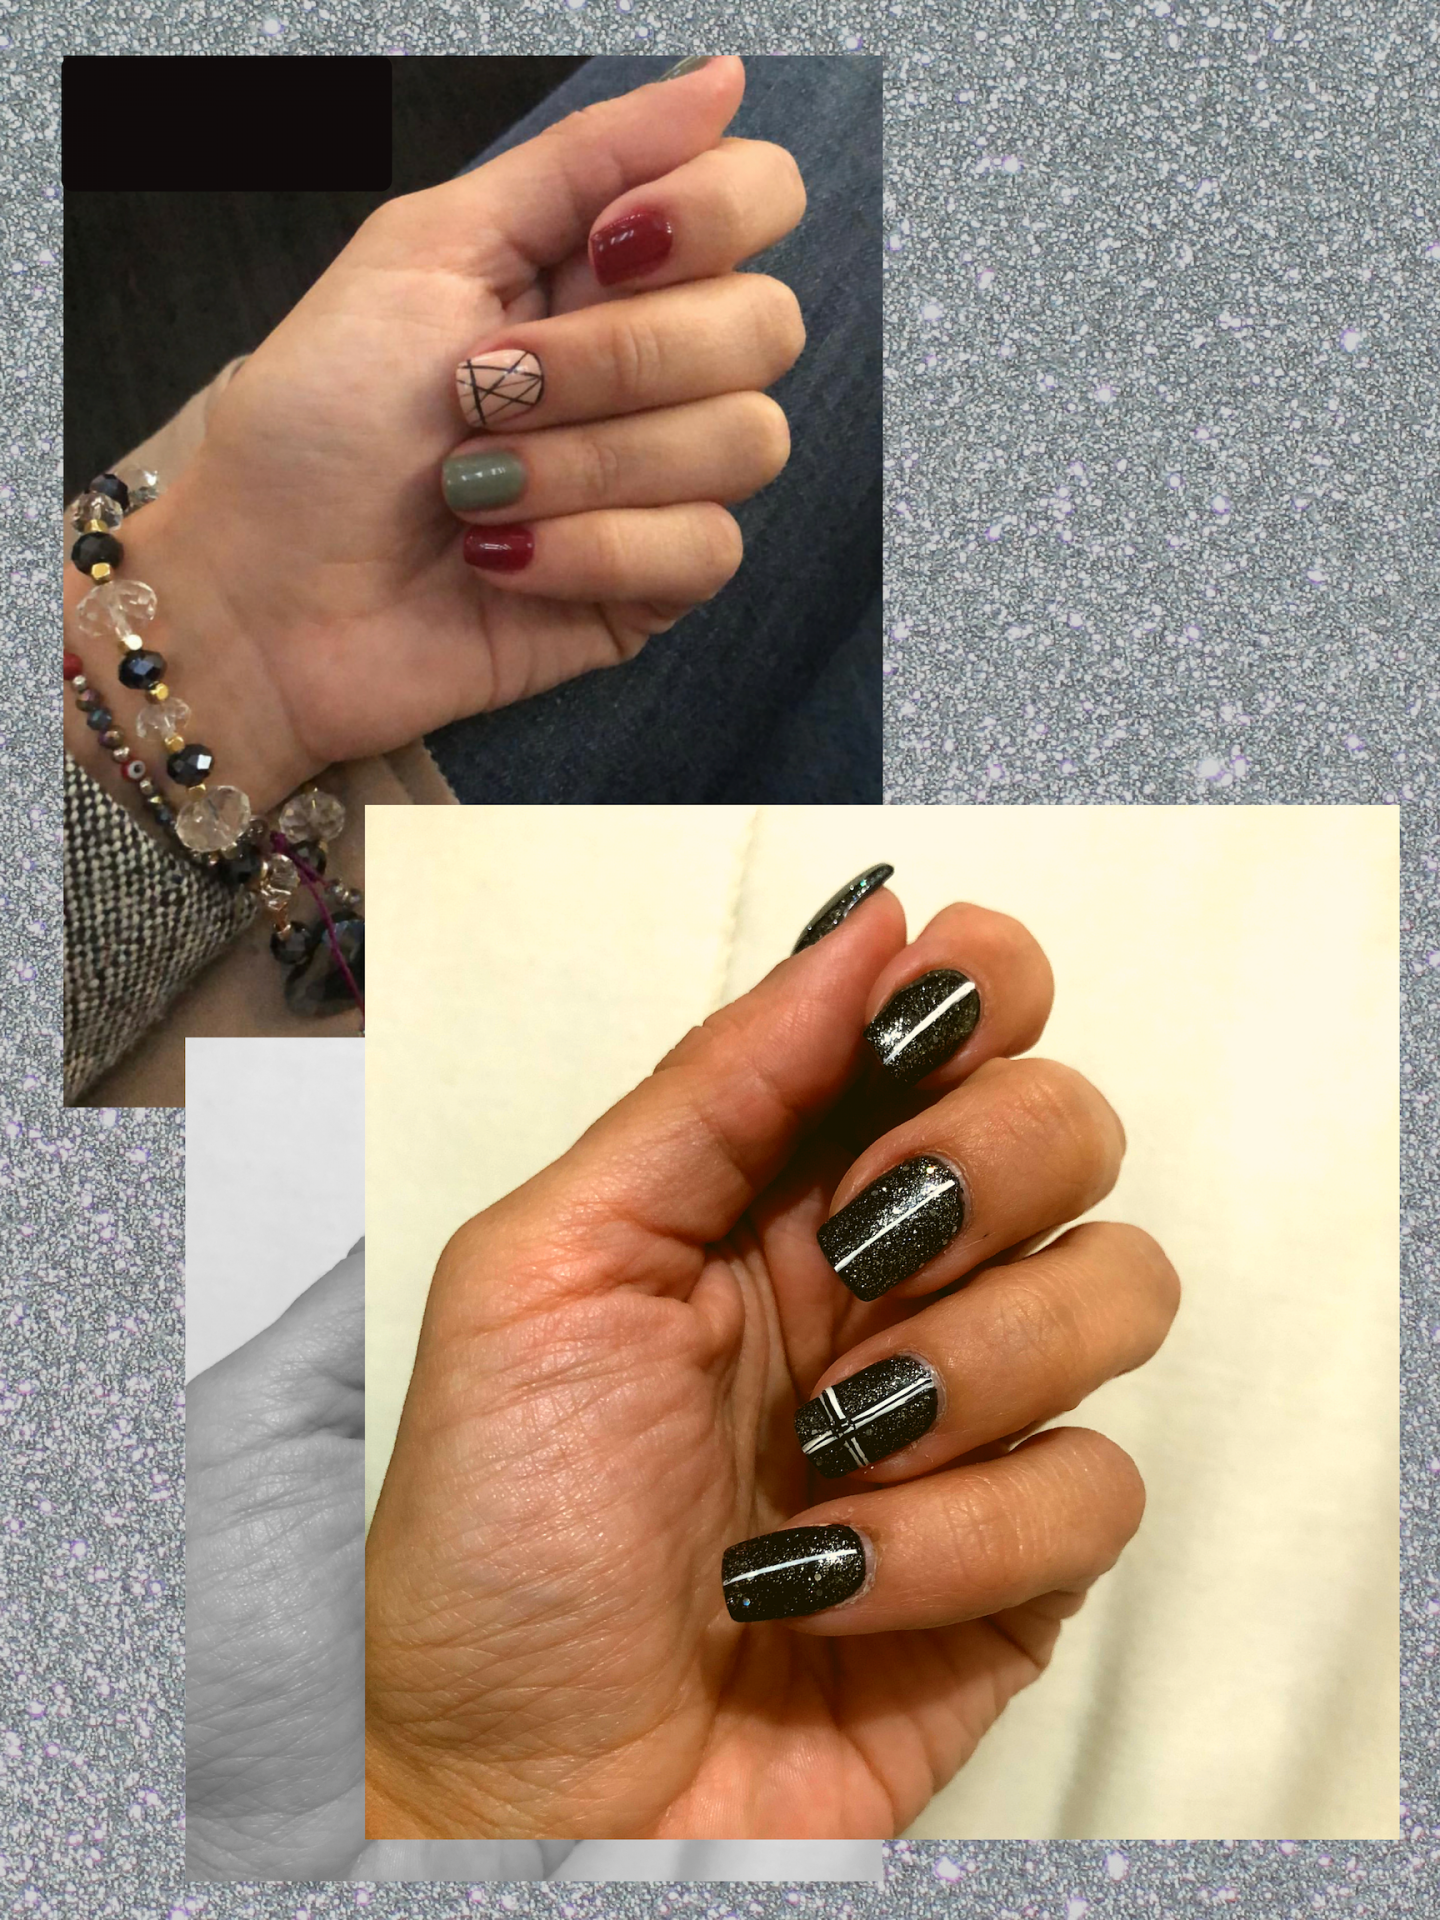 4 spots town perfect manicure